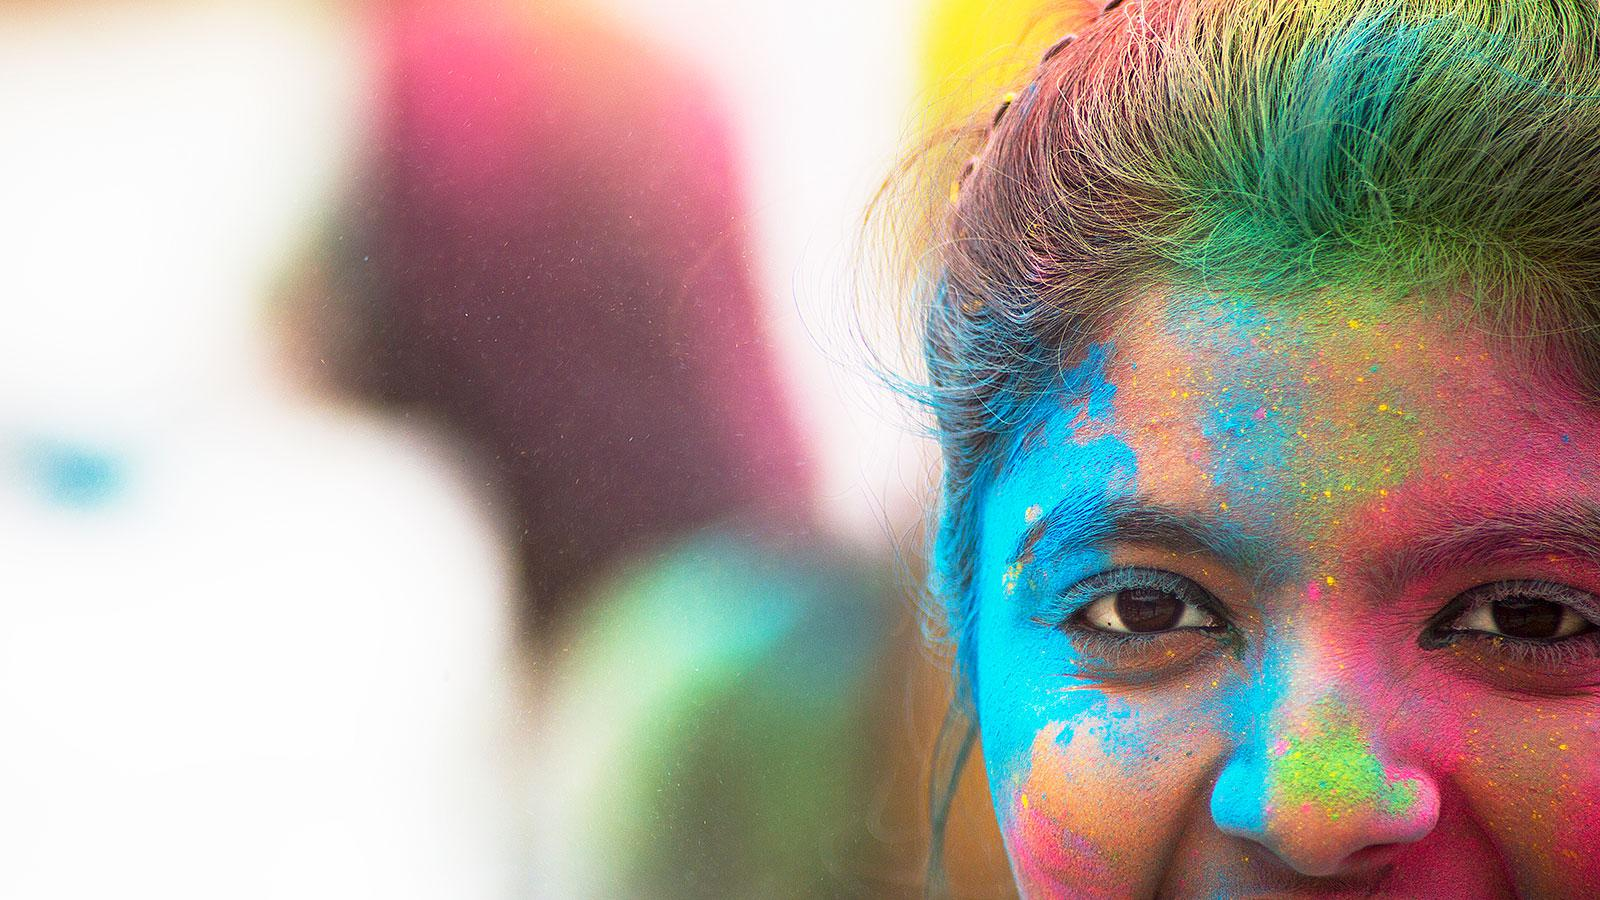 Women's face covered in colorful powders